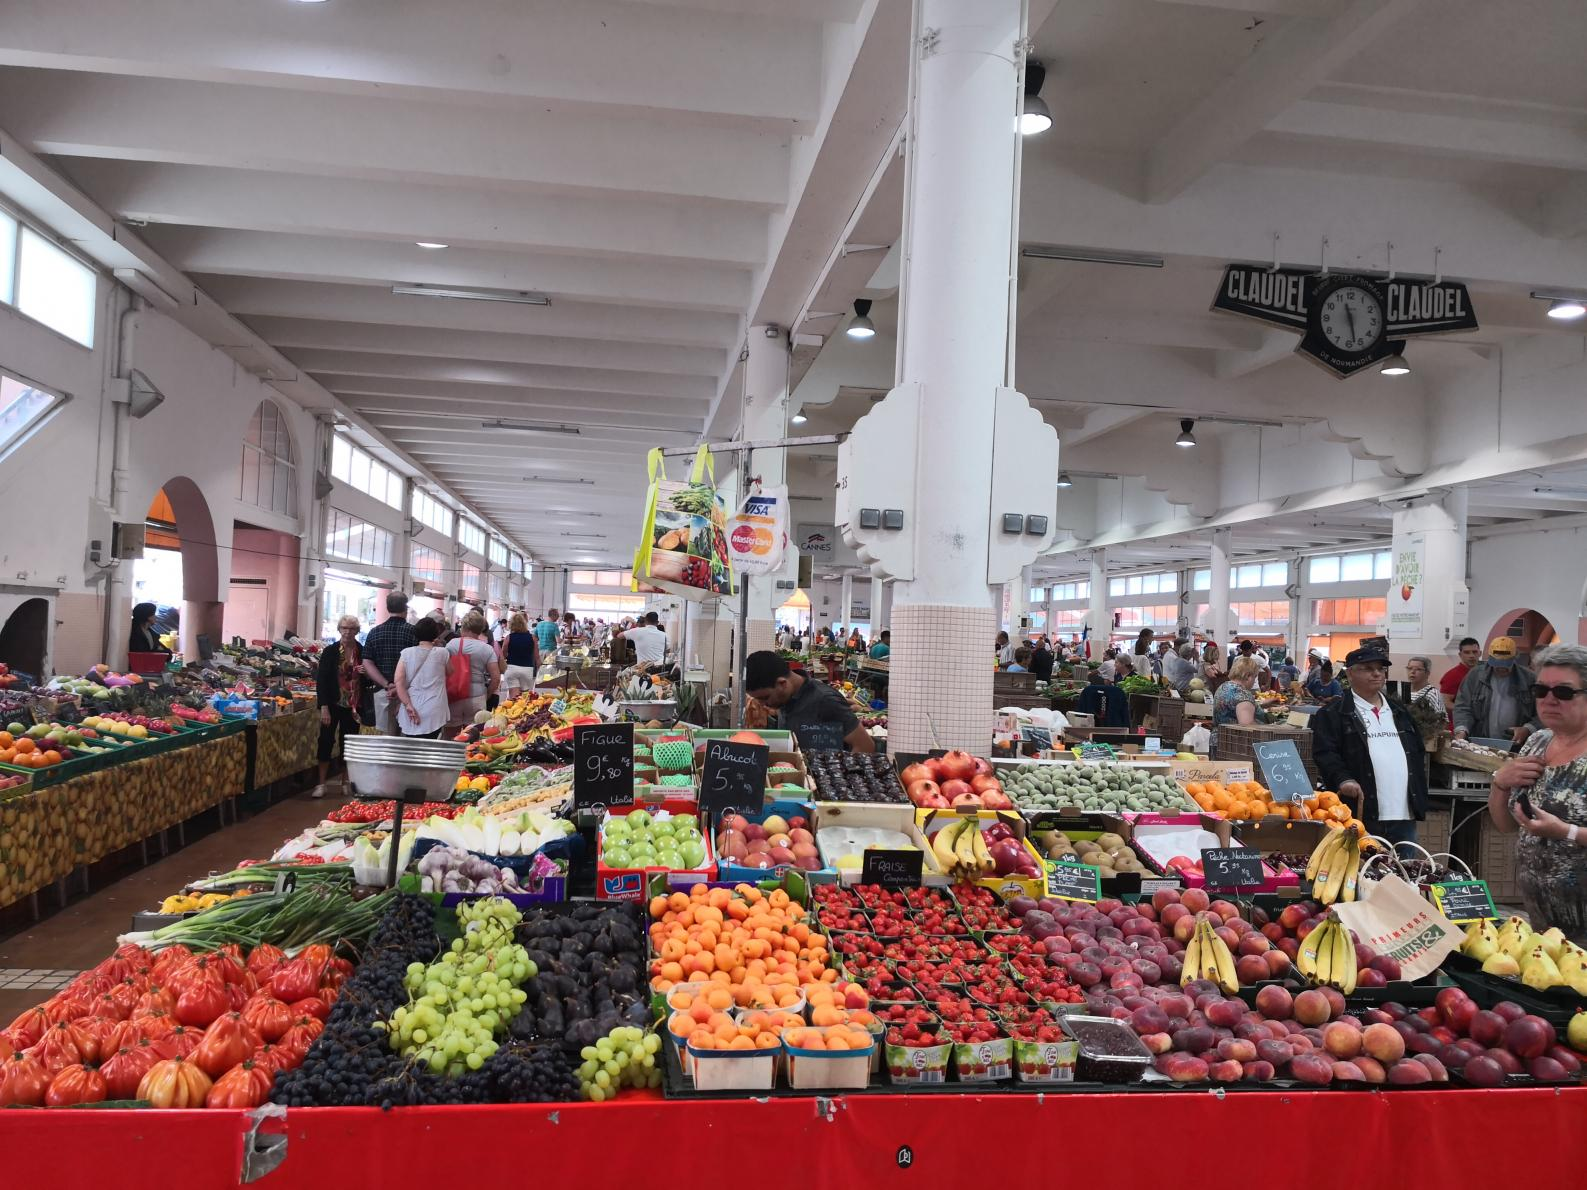 Forville market (daily fruits & vegetables market) is 3 mins walk from the apartment